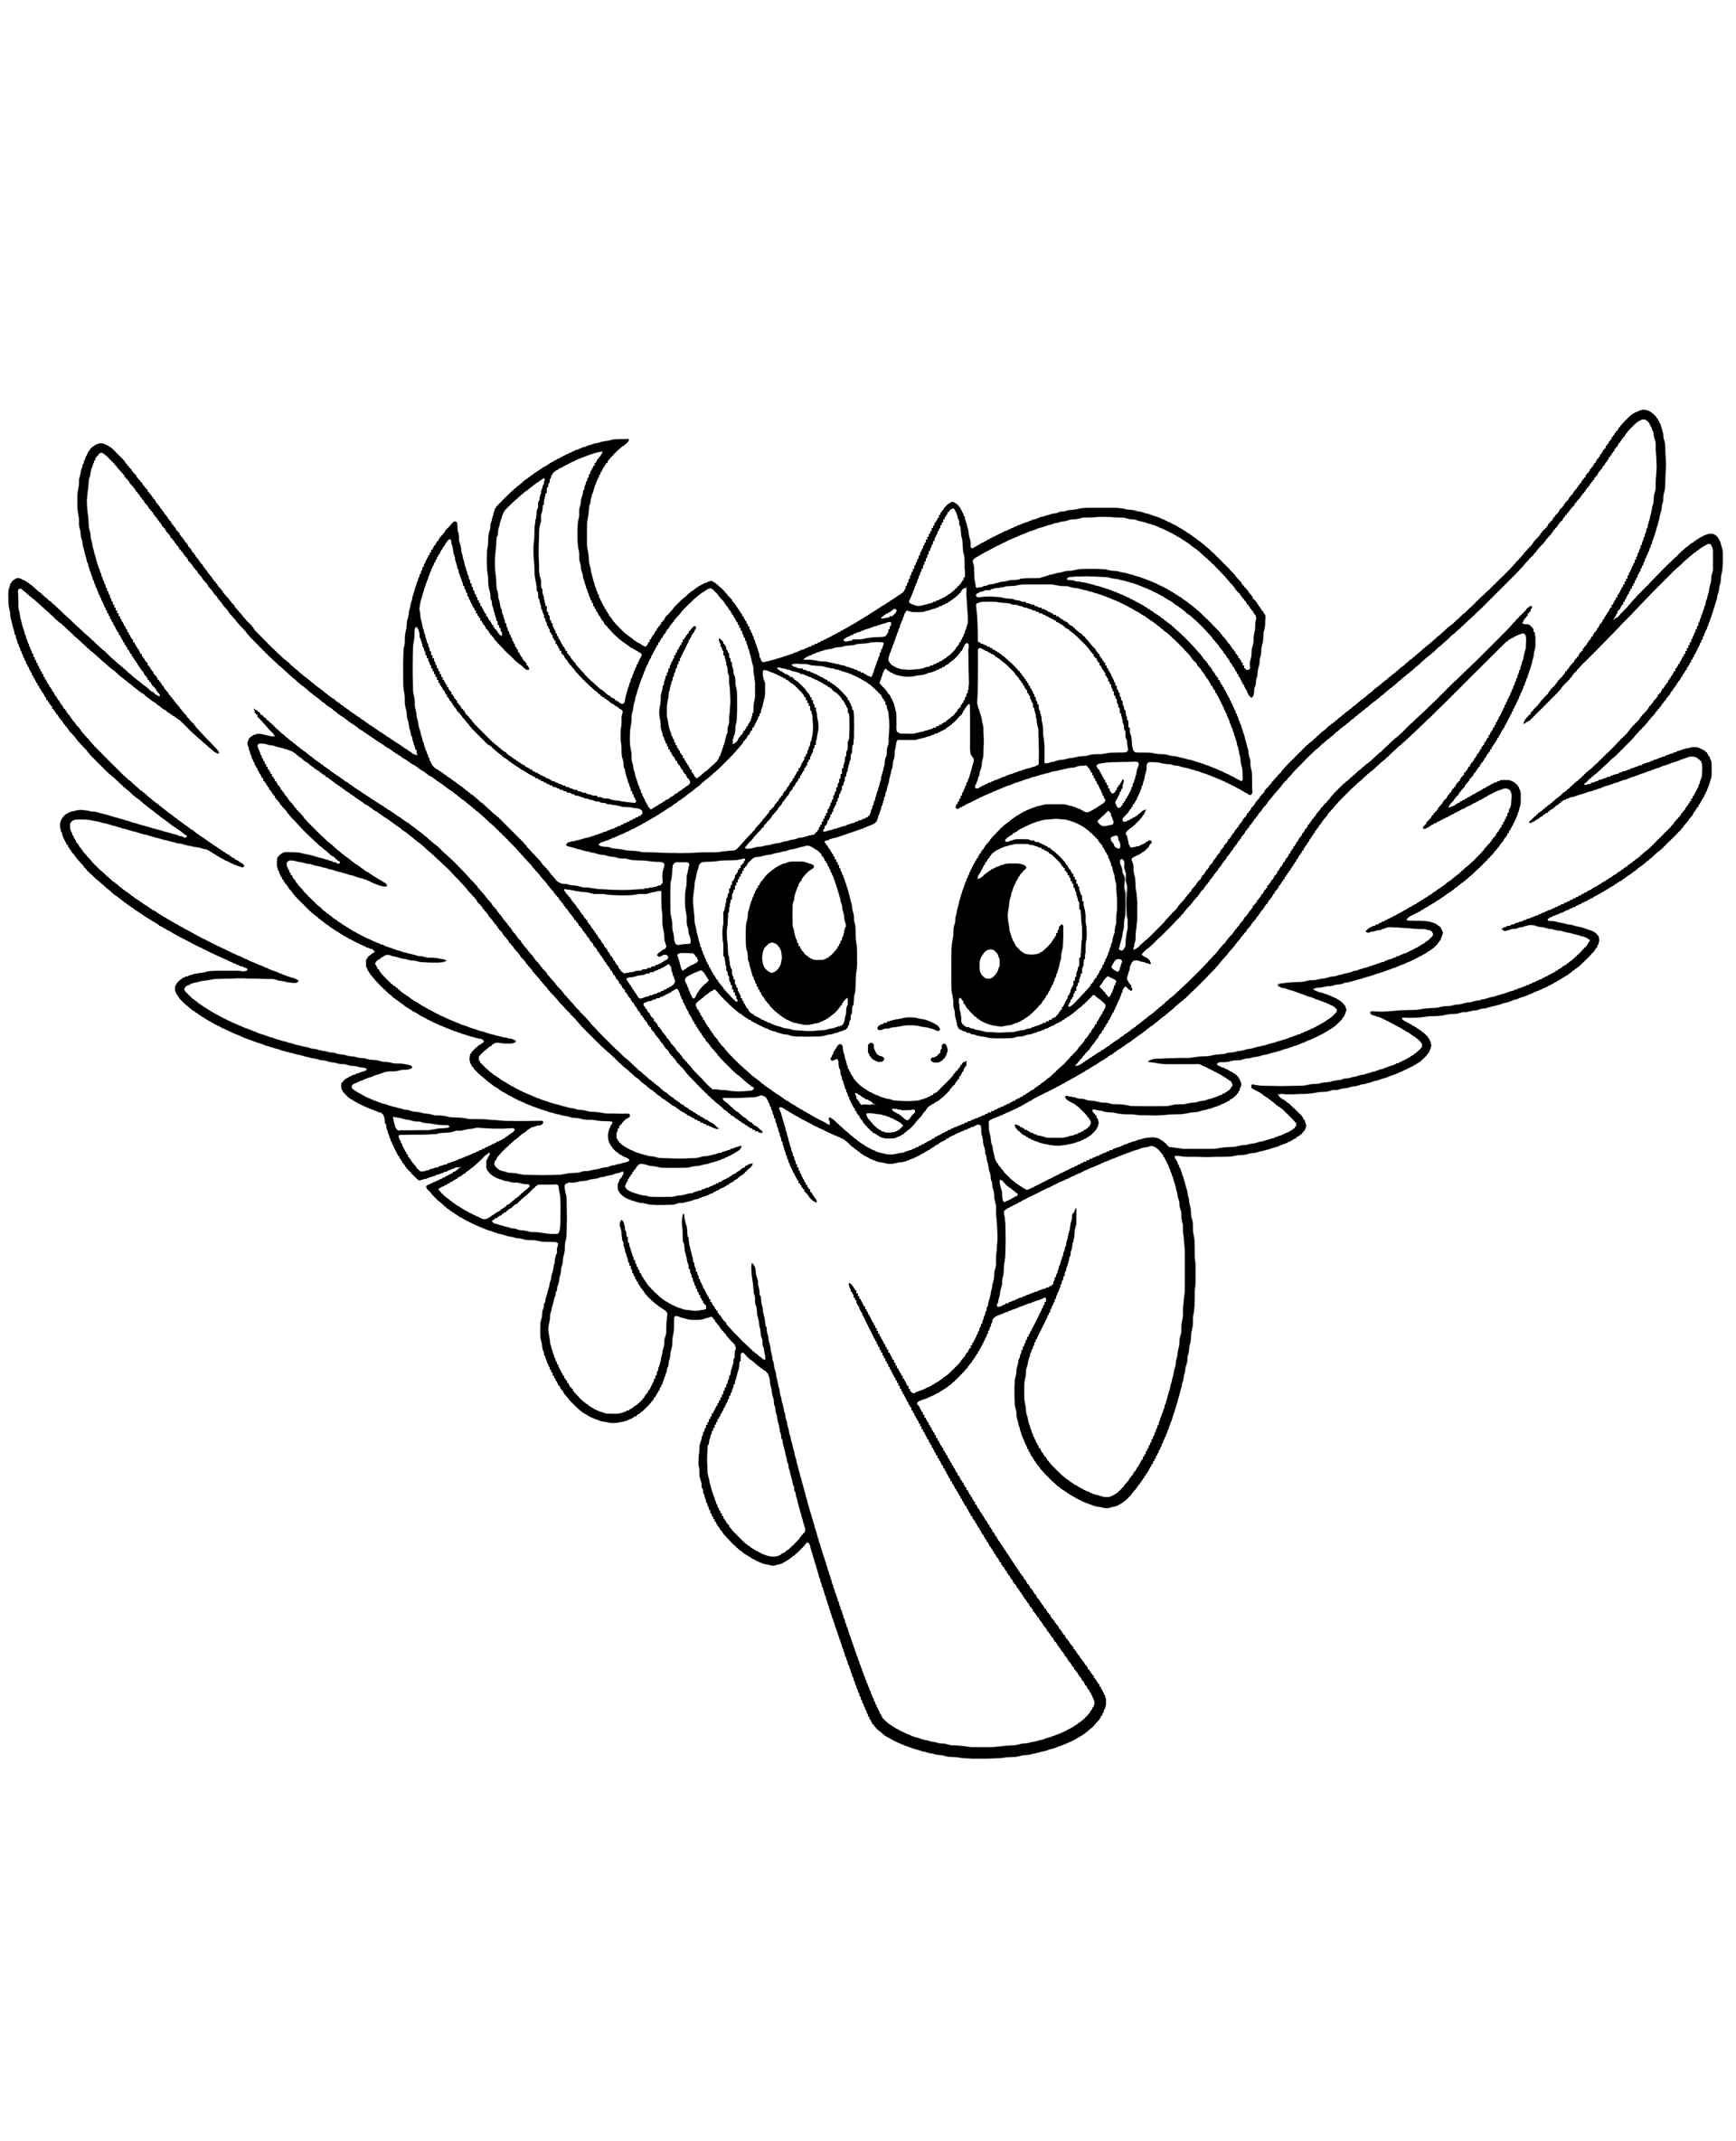 Coloring Page Of Confident Flying Pony Sparkle